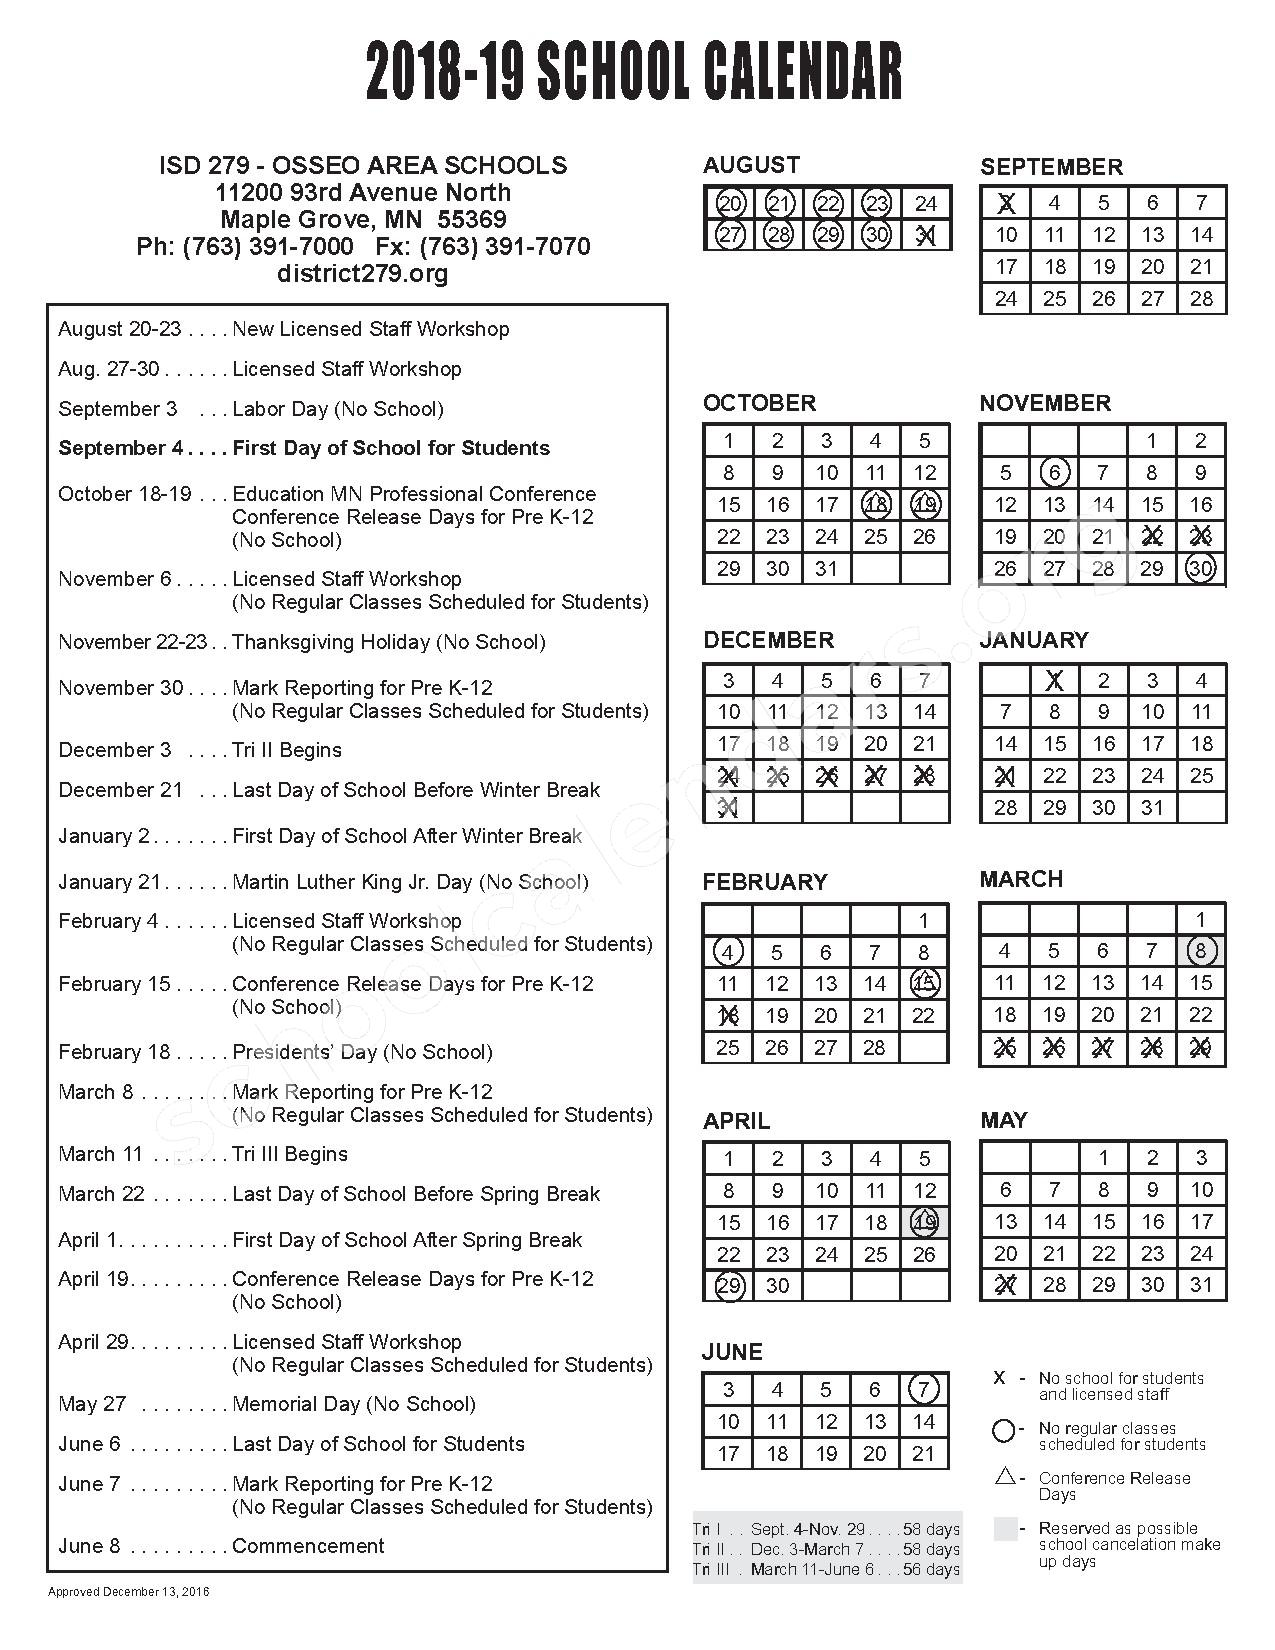 2018 - 2019 School Calendar – Osseo Senior High School – page 1